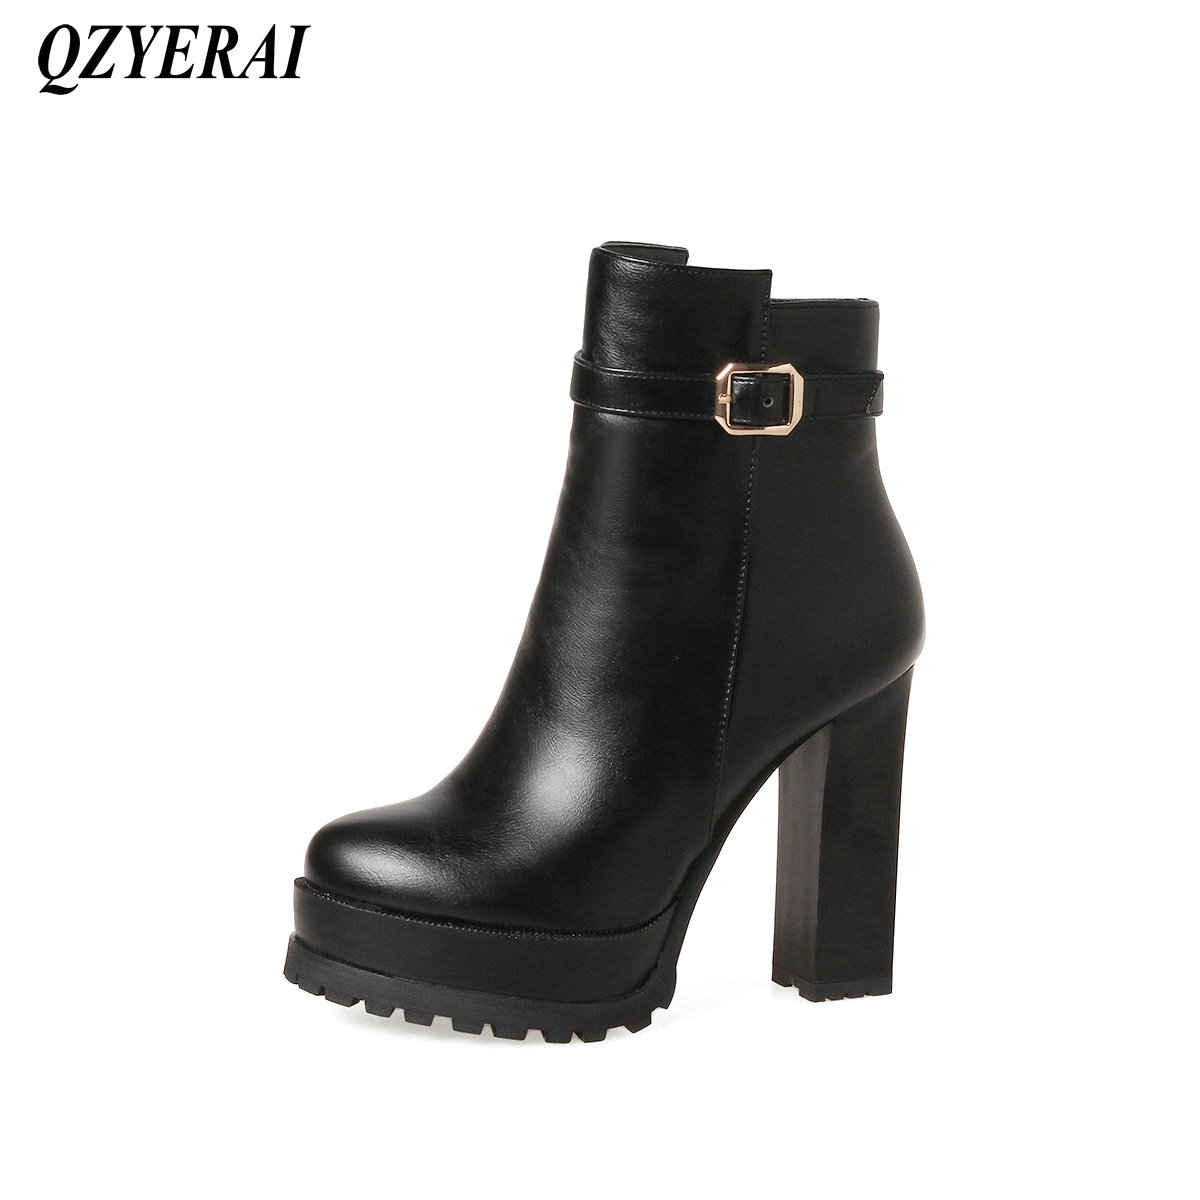 цены QZYERAI Winter fashionable lady short boots patent leather womens shoes womens boots